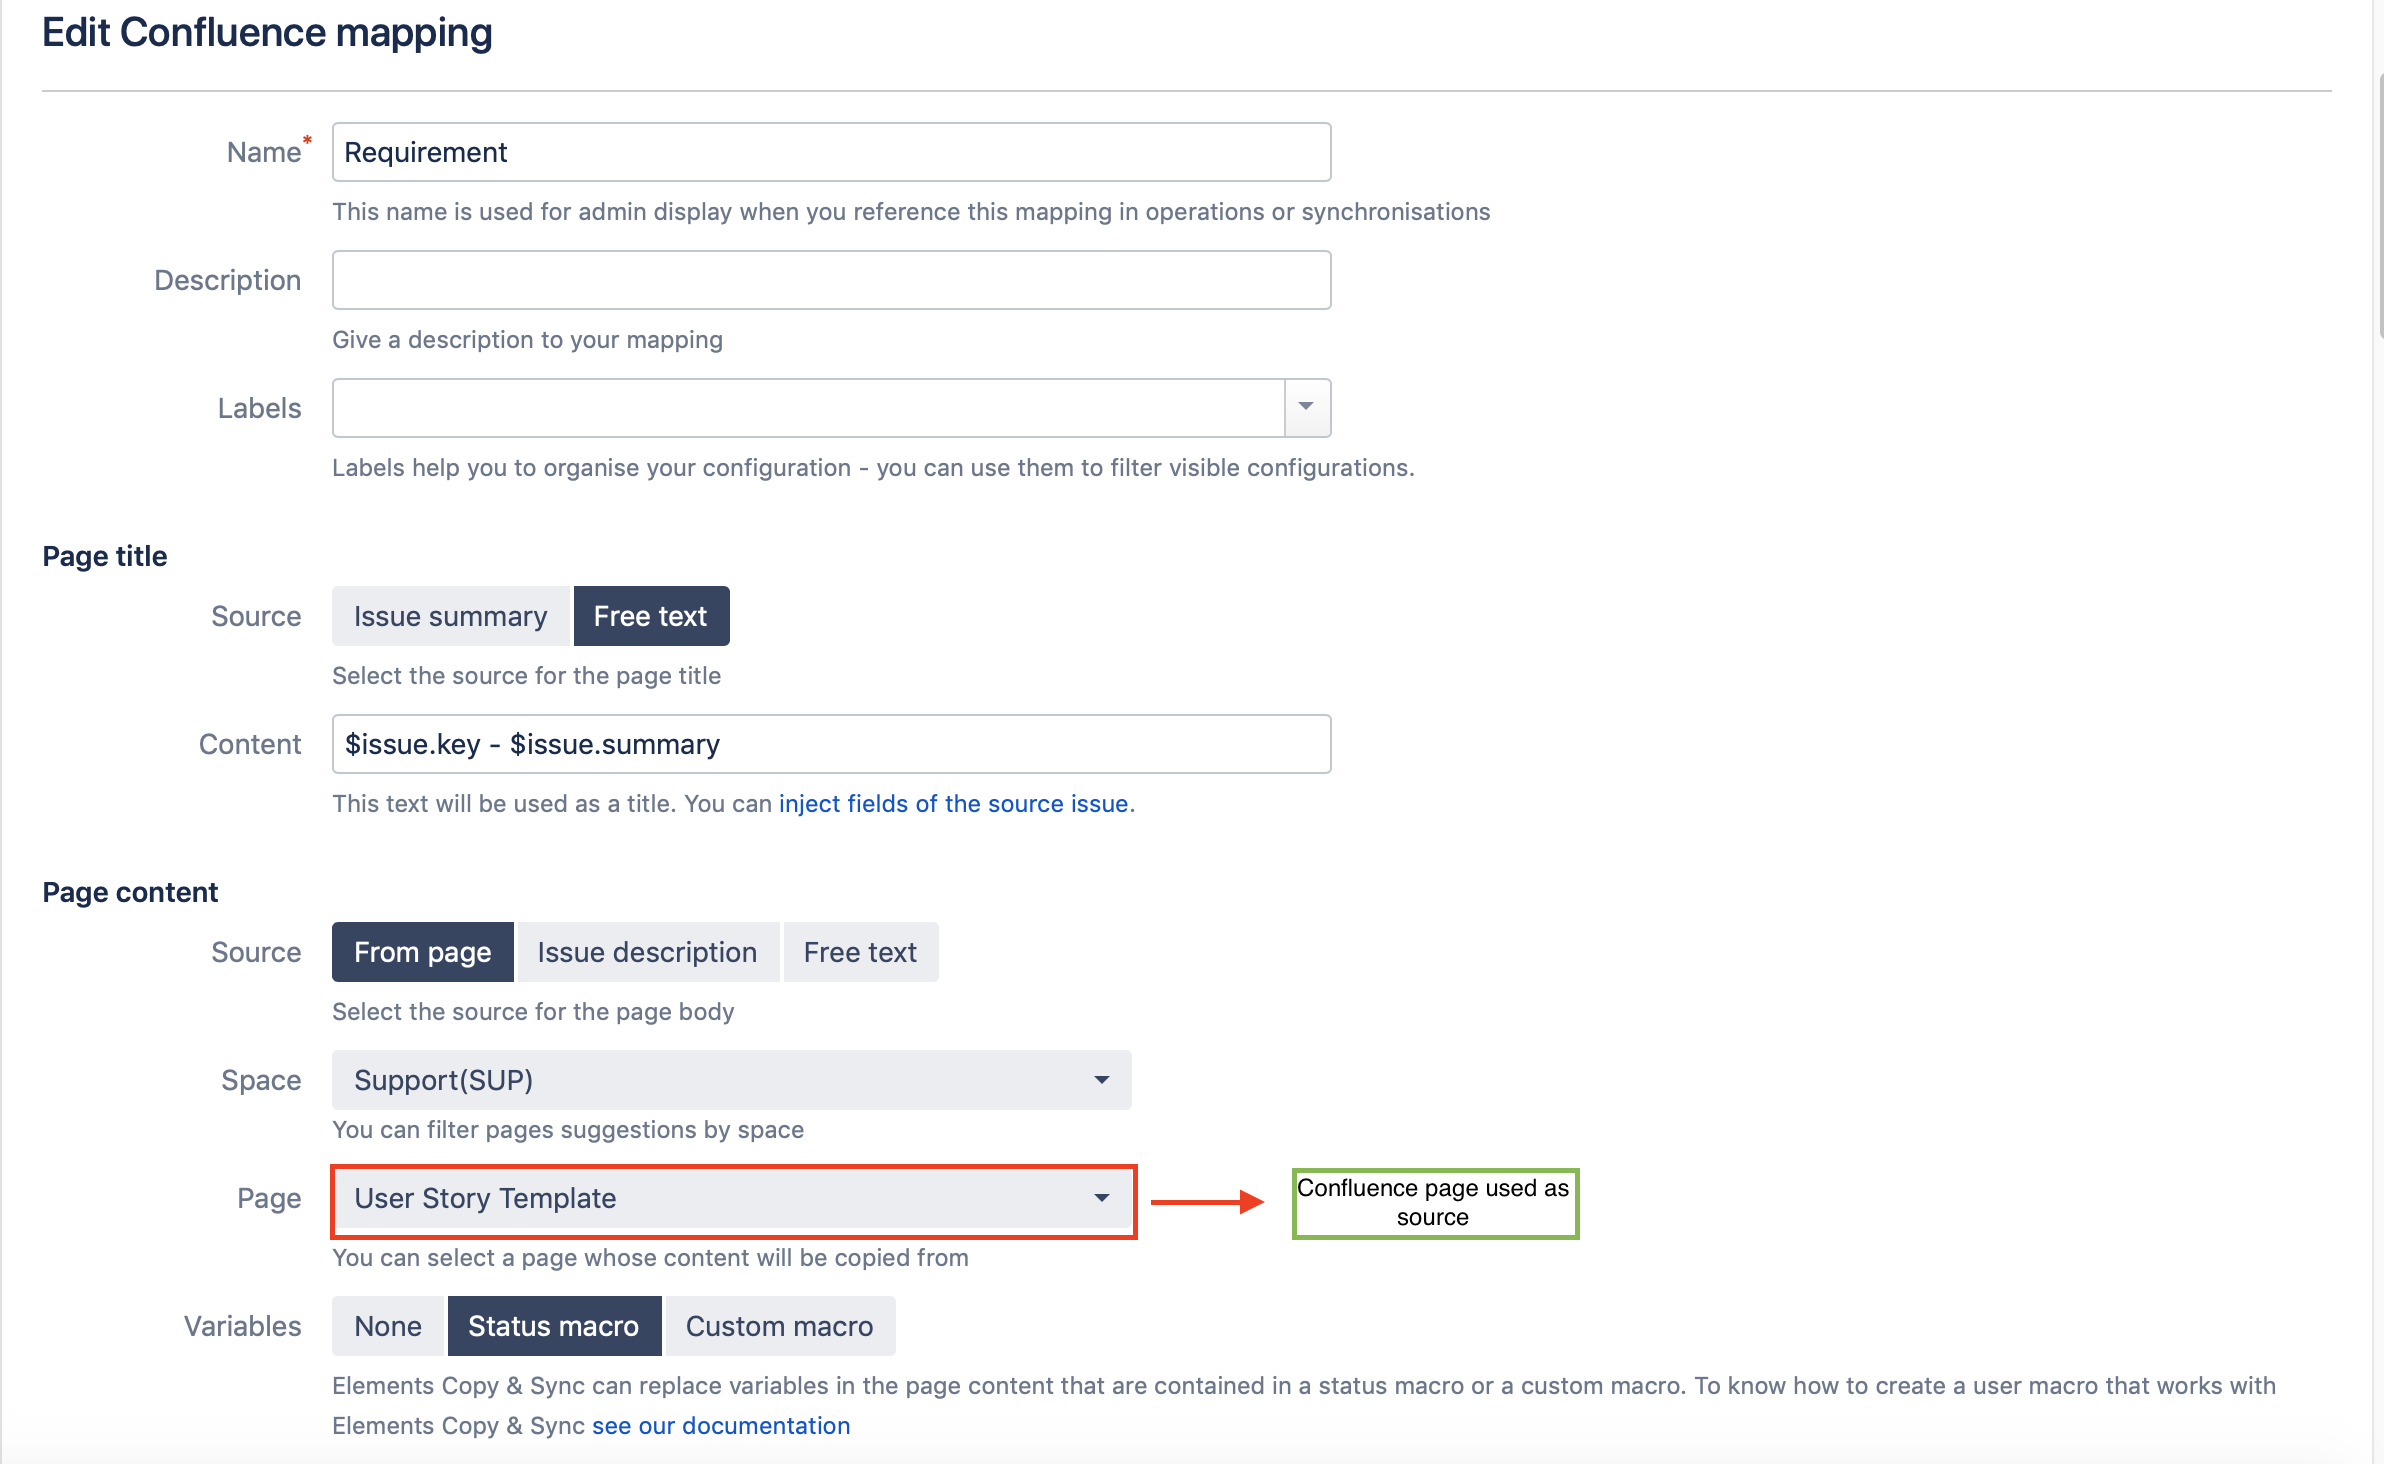 Create Confluence mapping in Jira